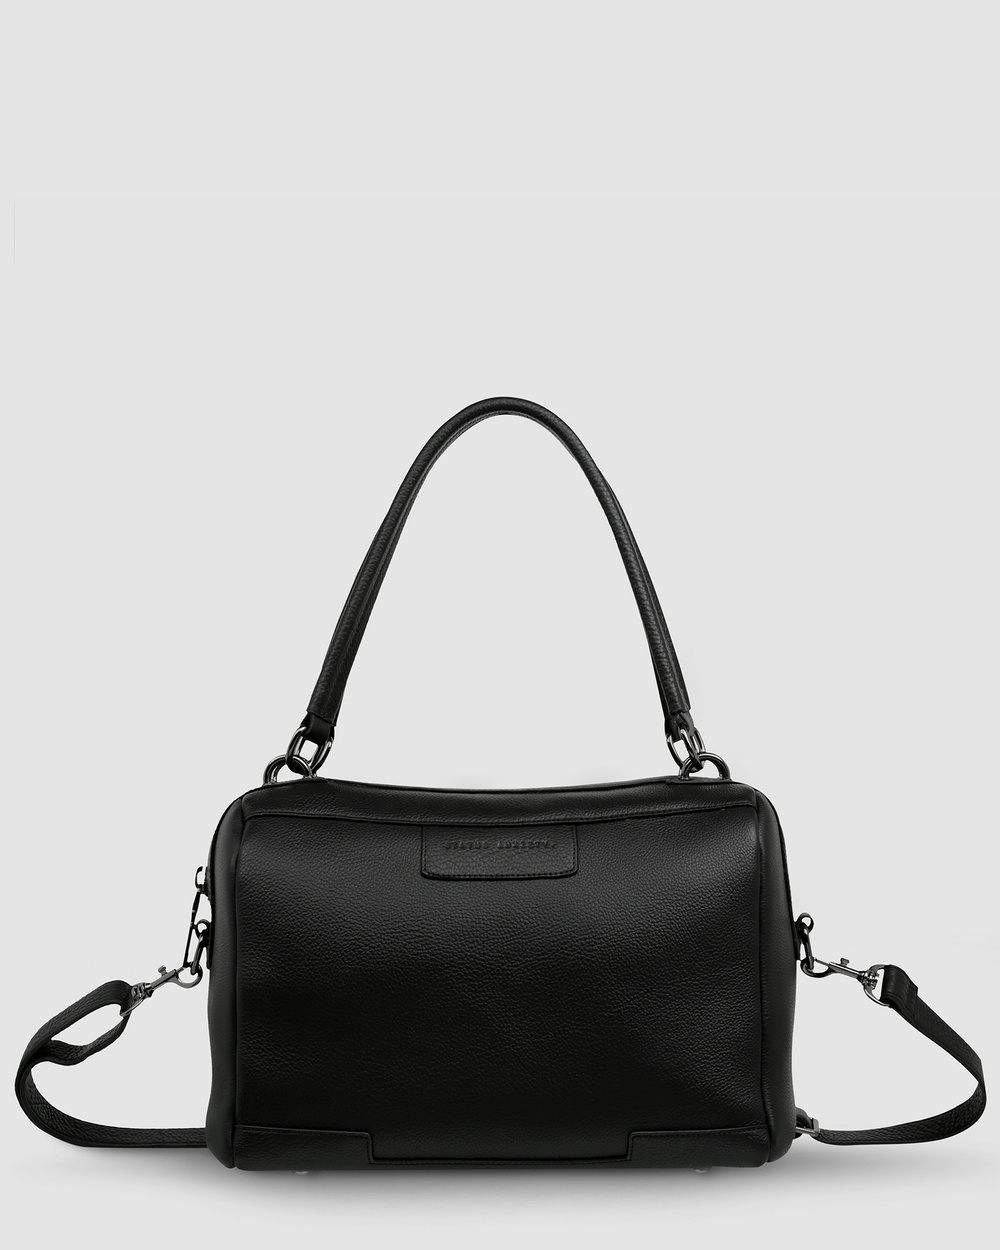 Status Anxiety Don't Ask Bag Satchels Black Leather bags Australia